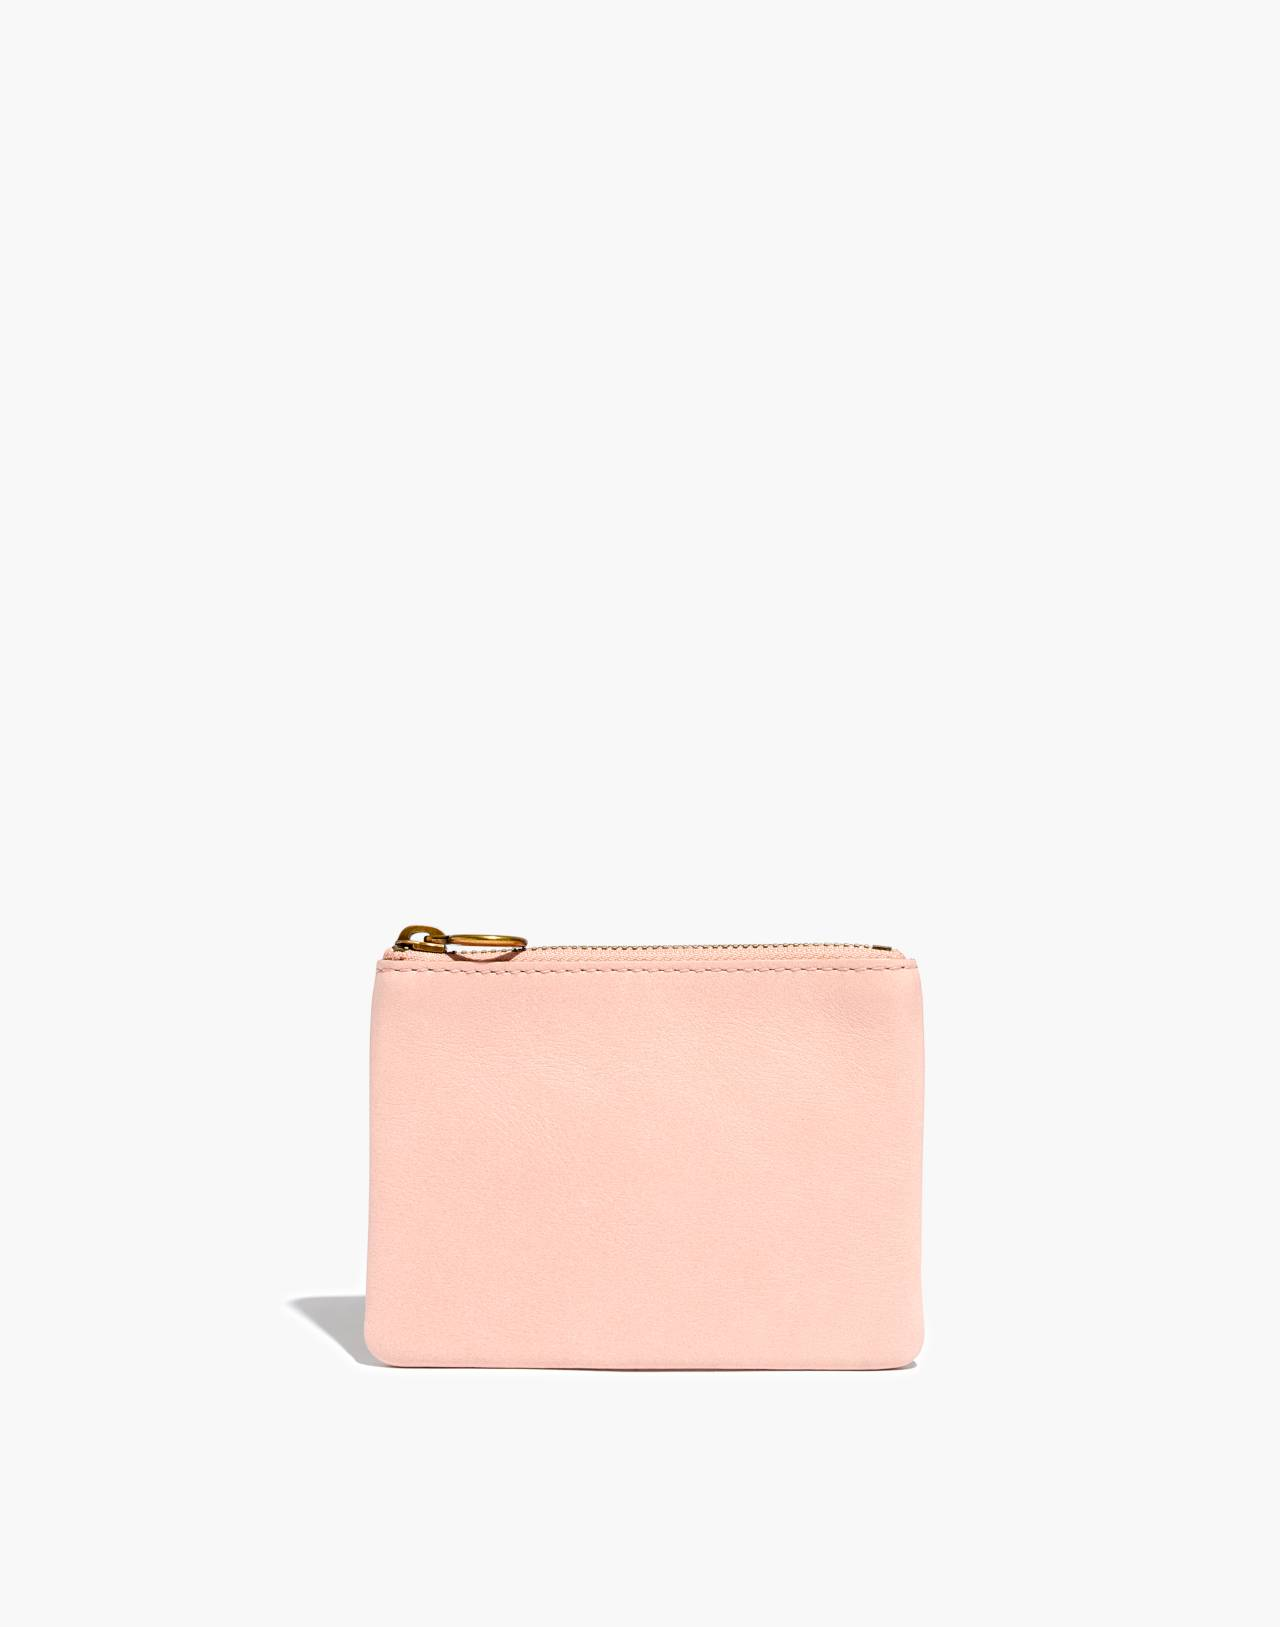 The Leather Pouch Wallet in sheer pink image 1